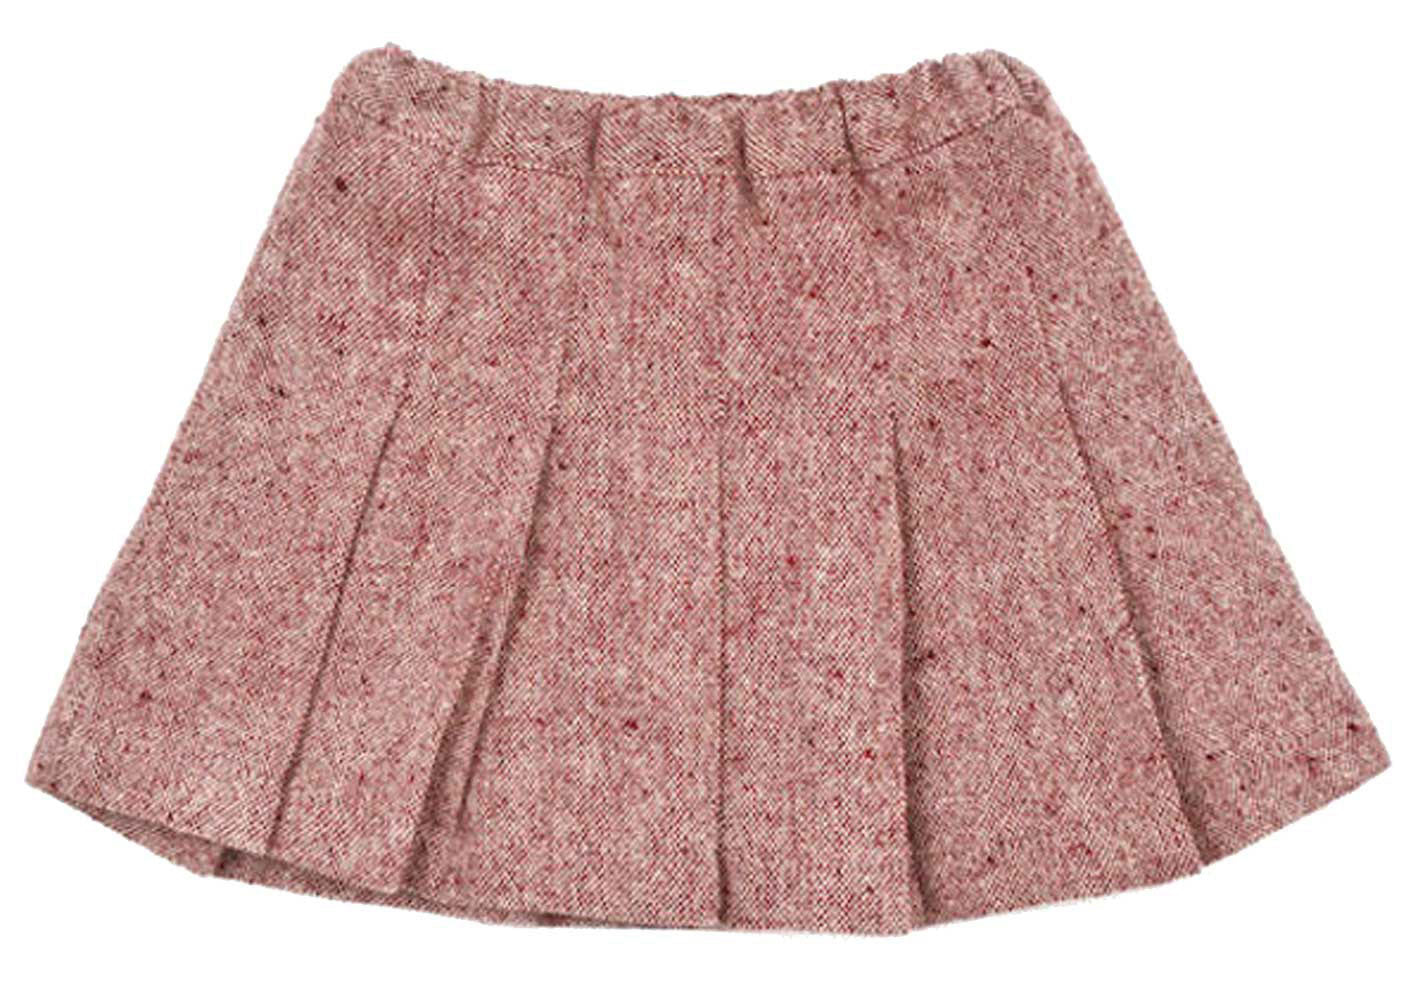 EGG Baby Pink Tweed Infant Skirt 6-12 months